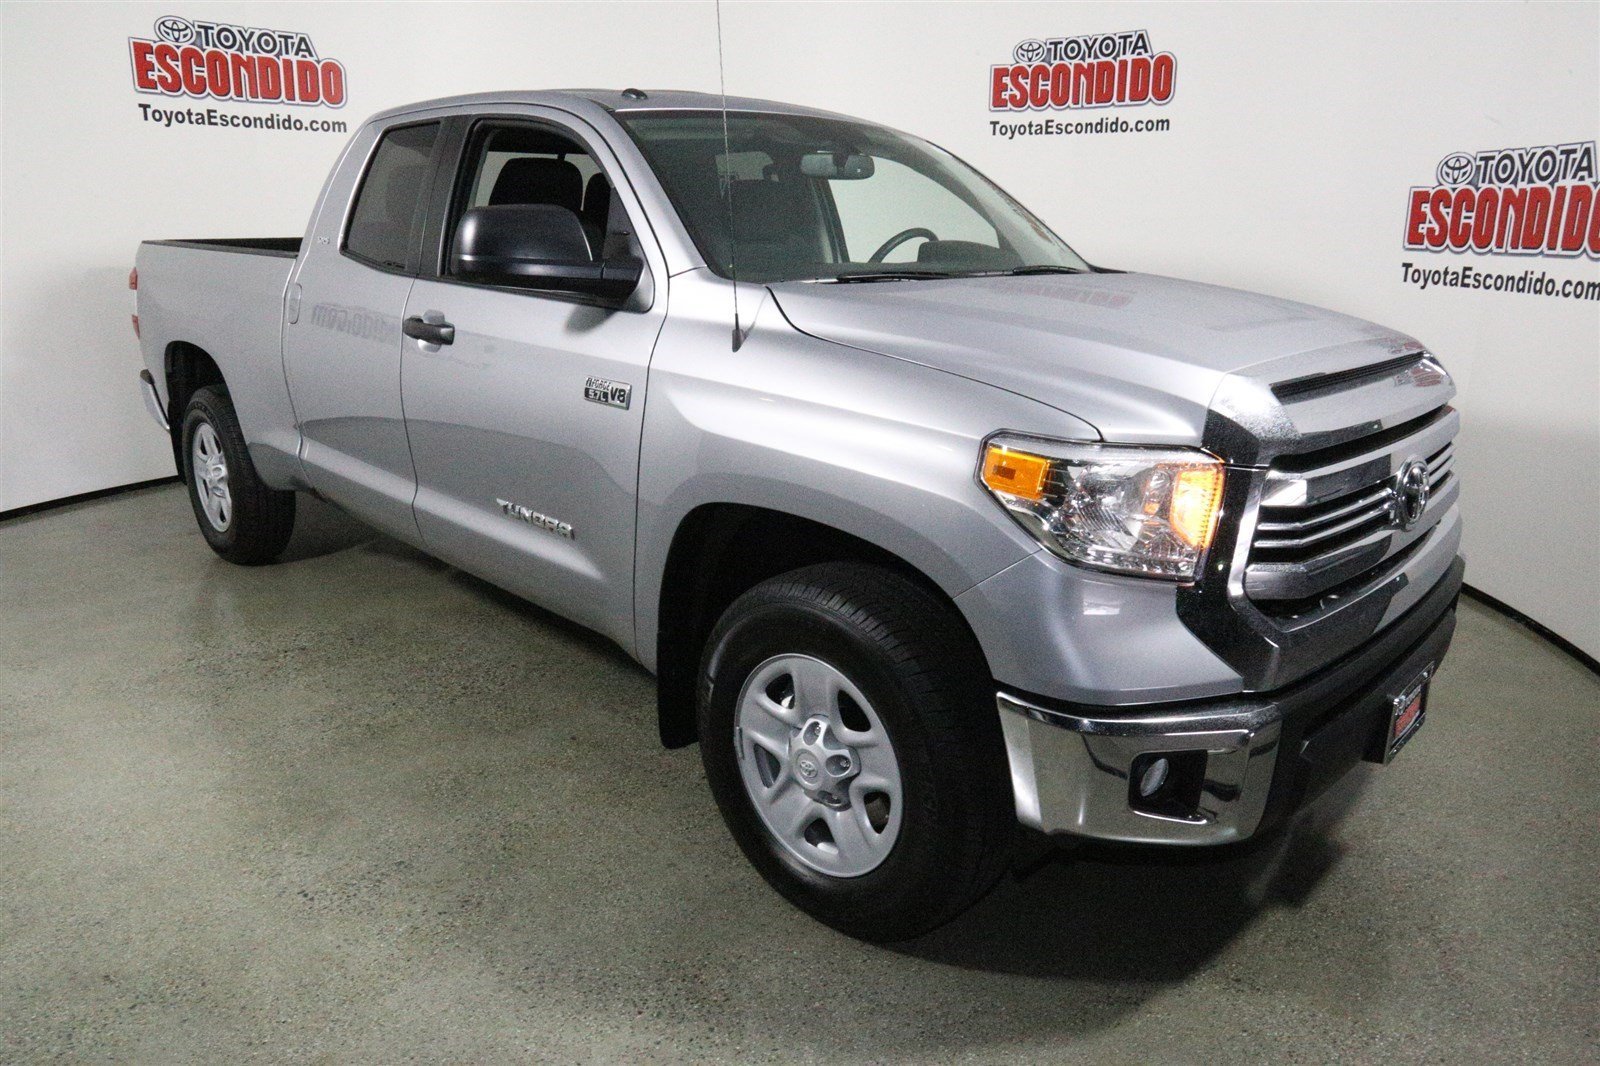 new 2017 toyota tundra 2wd sr5 double cab pickup in escondido 1014009 toyota of escondido. Black Bedroom Furniture Sets. Home Design Ideas